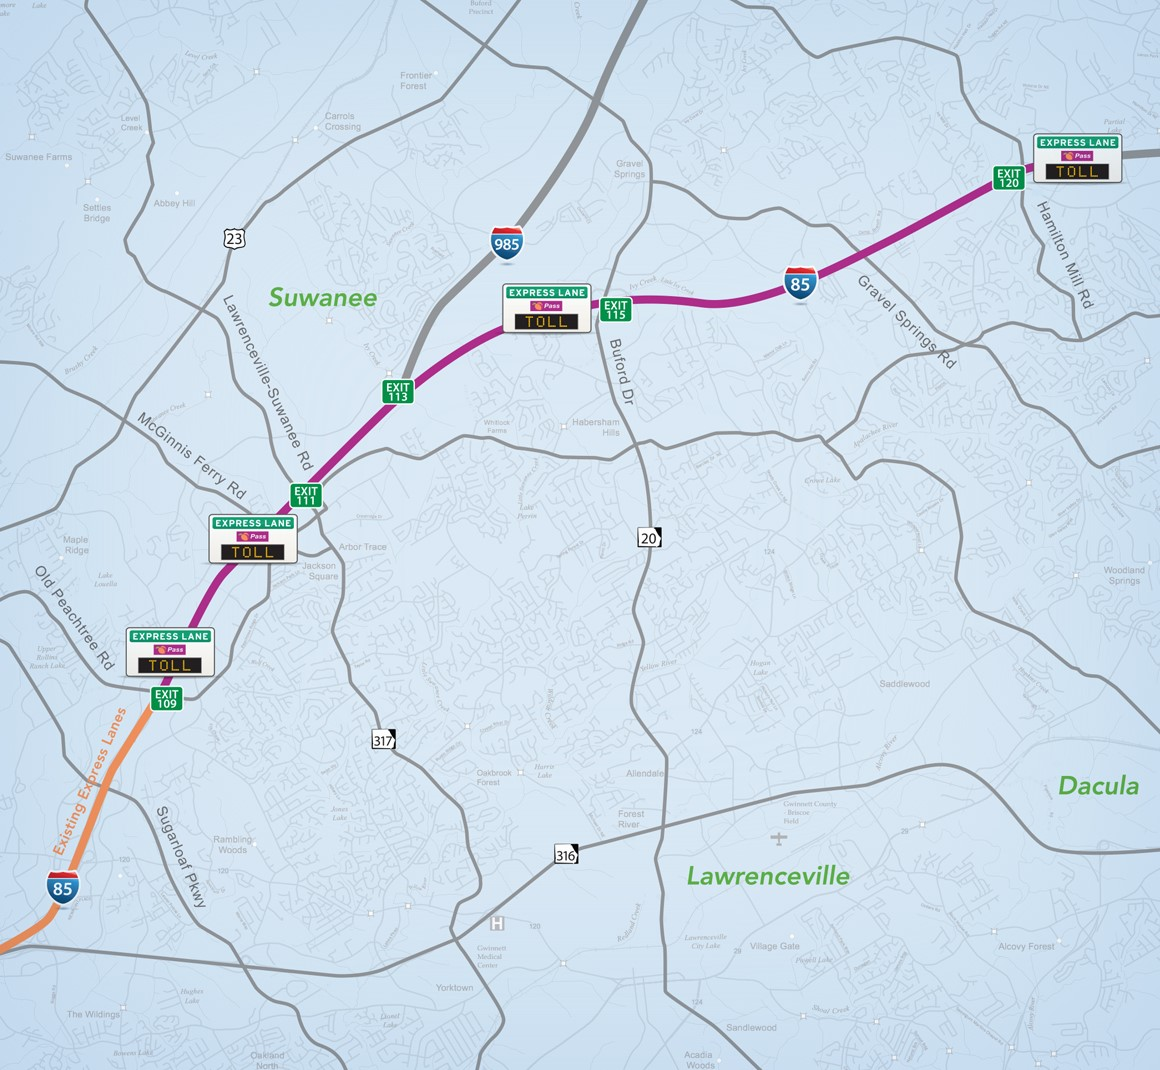 I-85 Extension Map with Toll rates